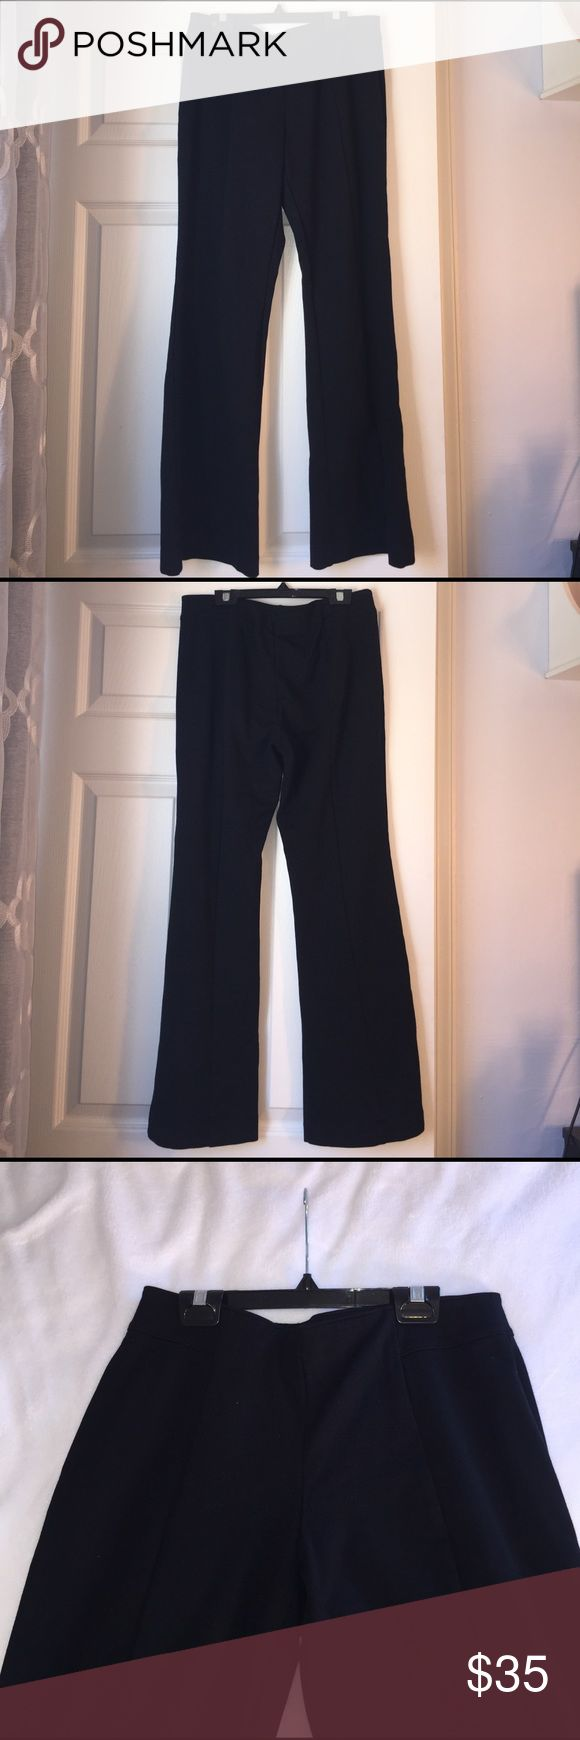 """Like new black stretchy work pants These pants are basically new, I'm only selling them because they're too short on me since I accidentally got an S(Short) pair (I'm 5'5""""). They're good material and were expensive, waistband is stretchy and so are the pants but they're incredibly supportive and lock you in so I feel like they make you look skinnier. These are really great pants and will last you a long time! INC International Concepts Pants Trousers"""